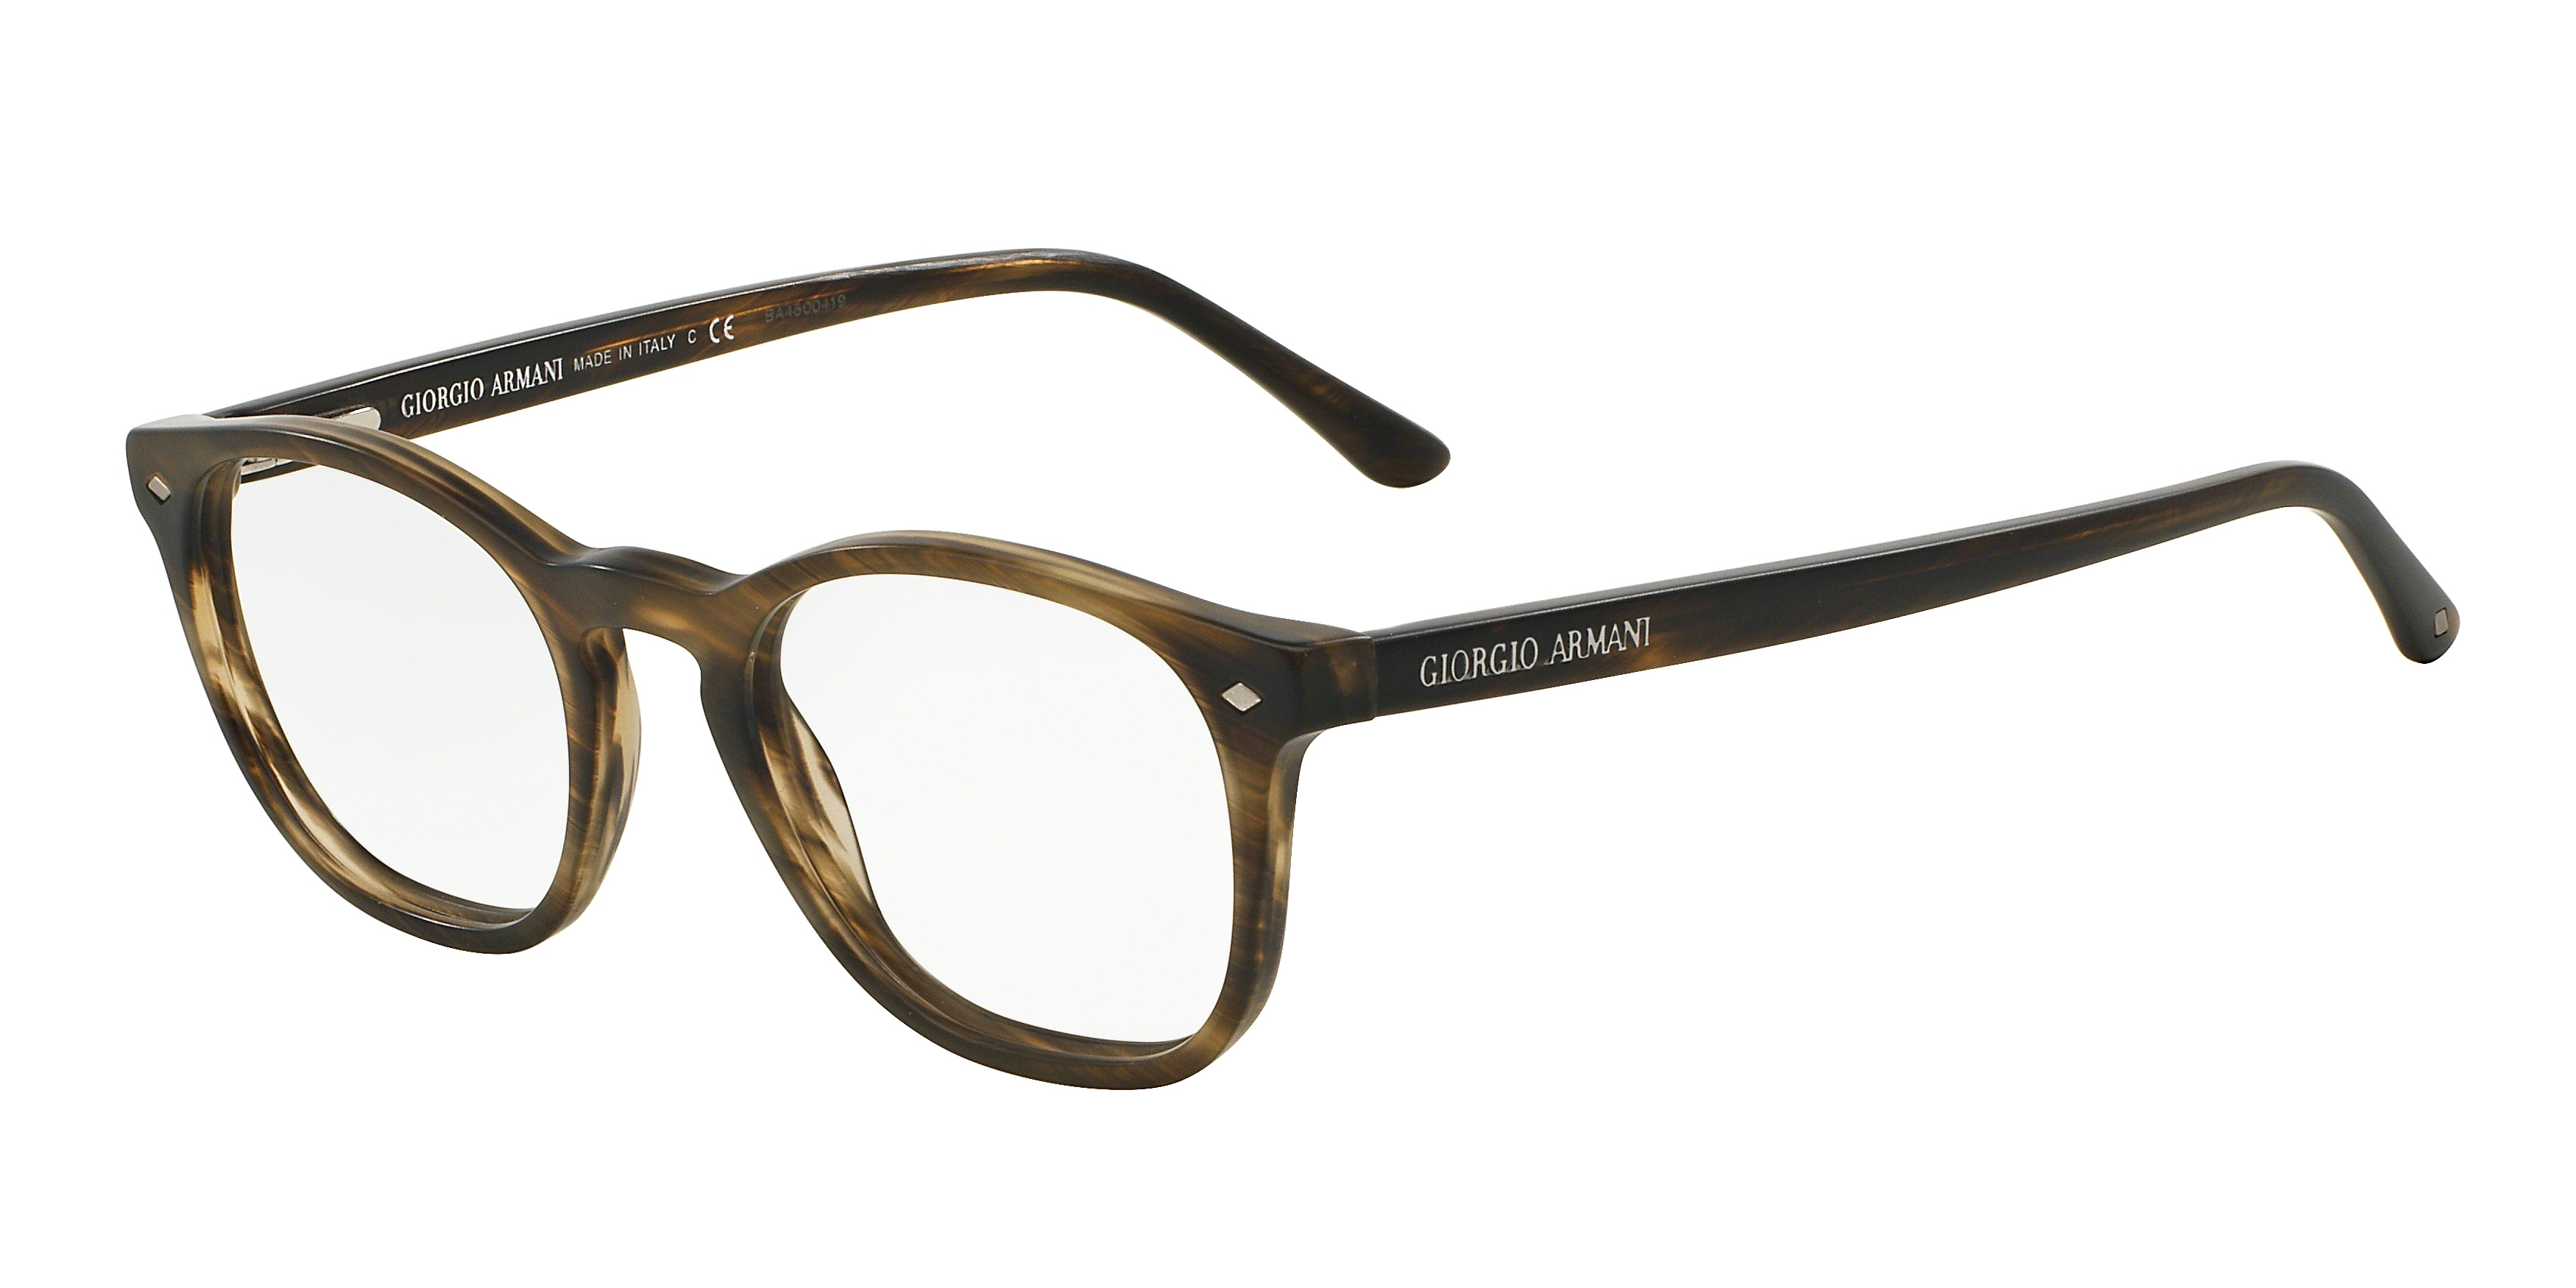 Giorgio Armani Frames Of Life - David Clulow